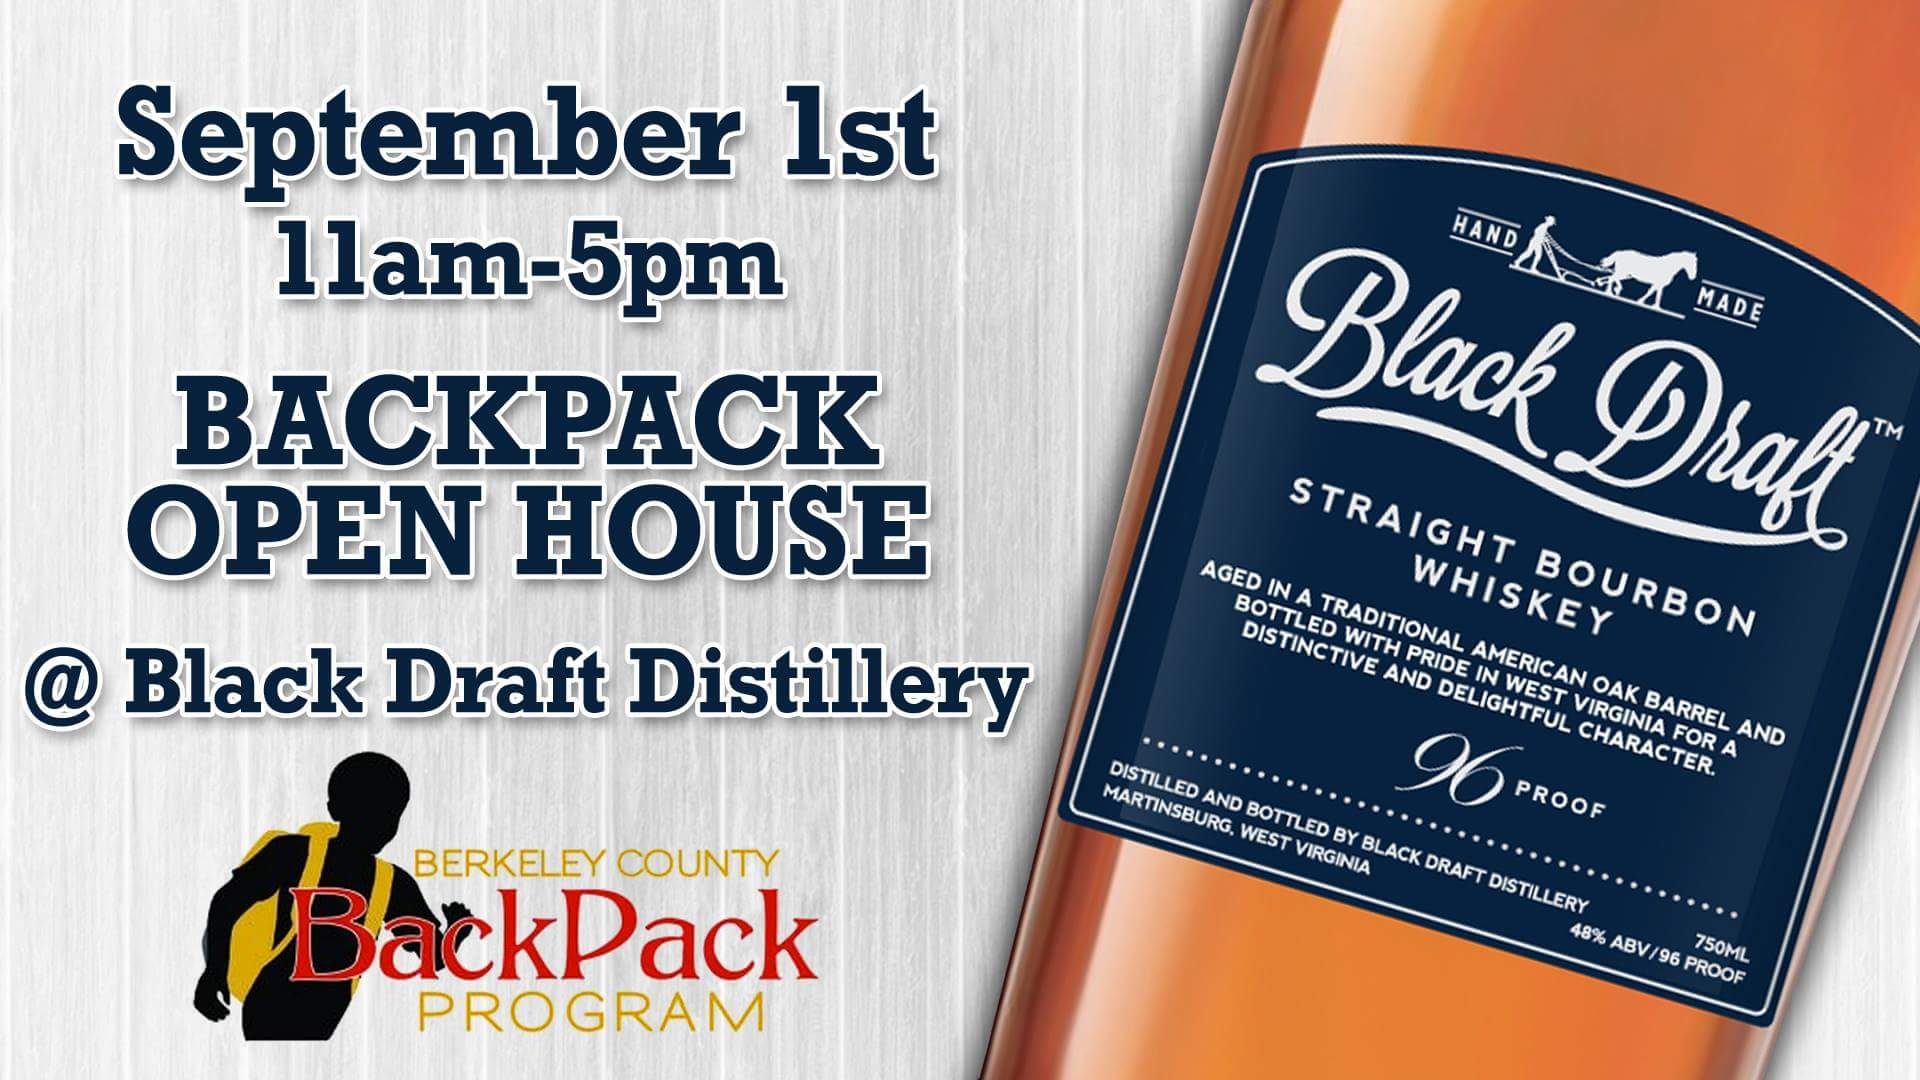 Open House at Black Draft Distillery